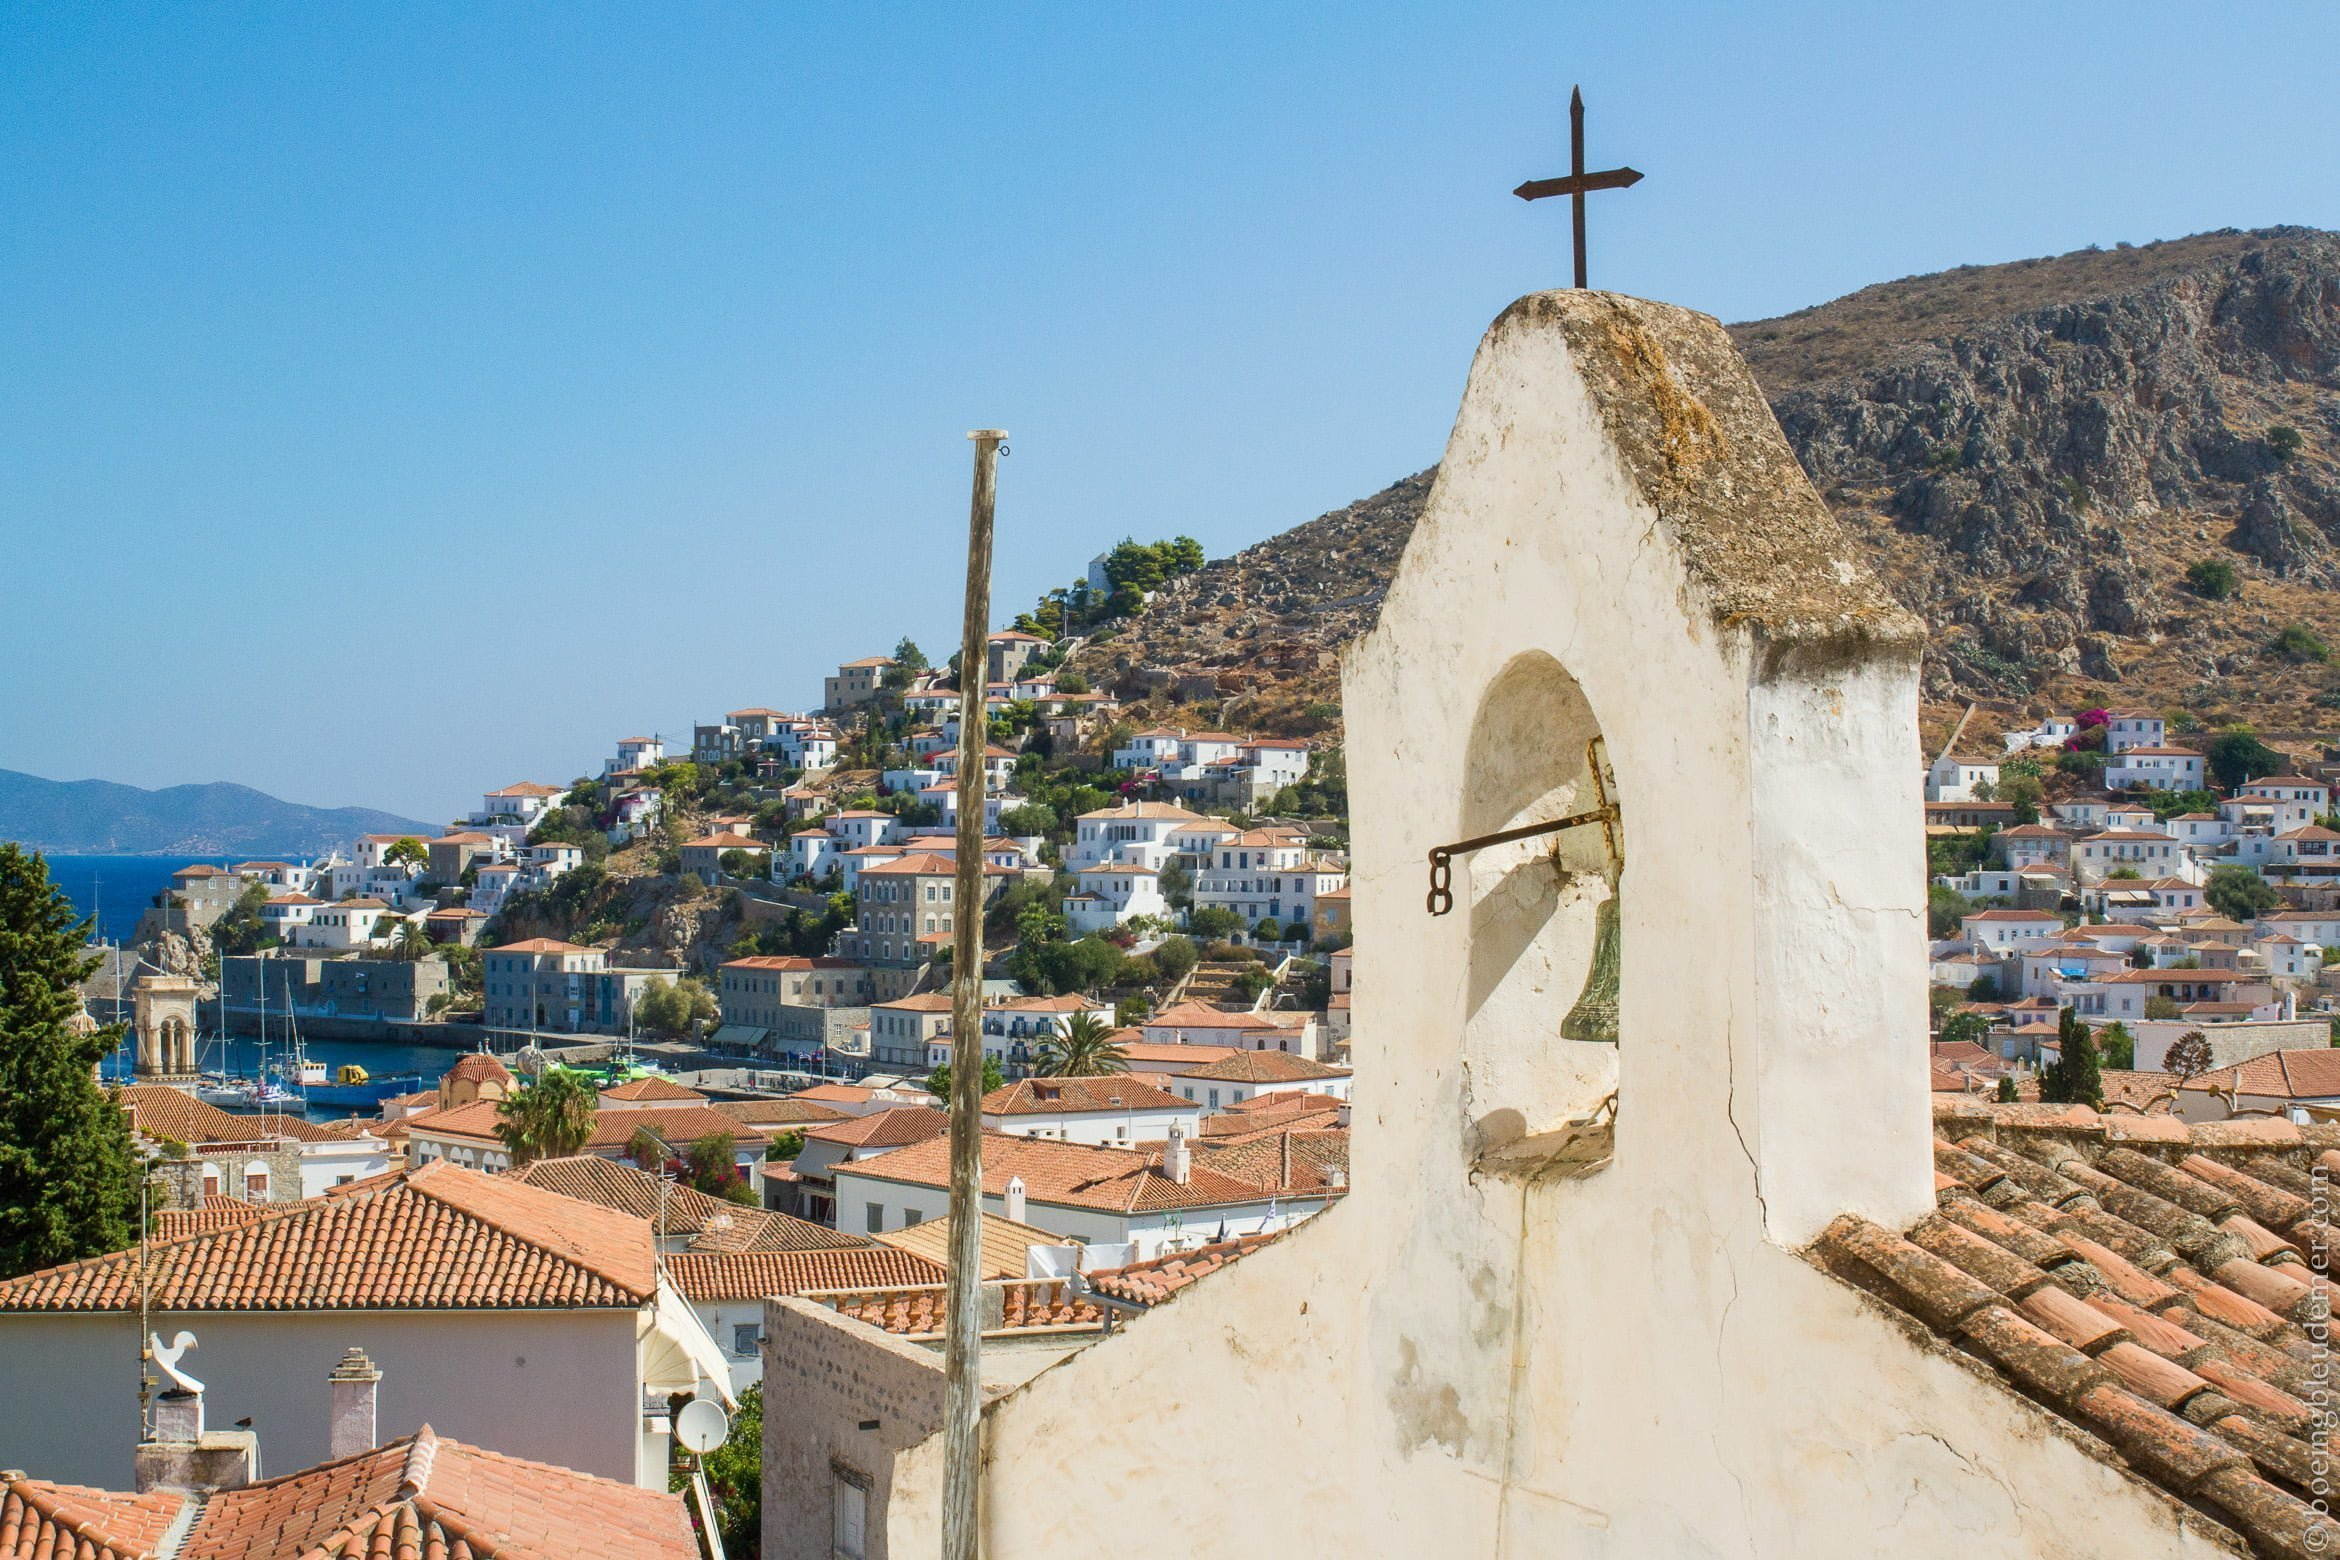 Pittoresque île d'Hydra: église orthodoxe